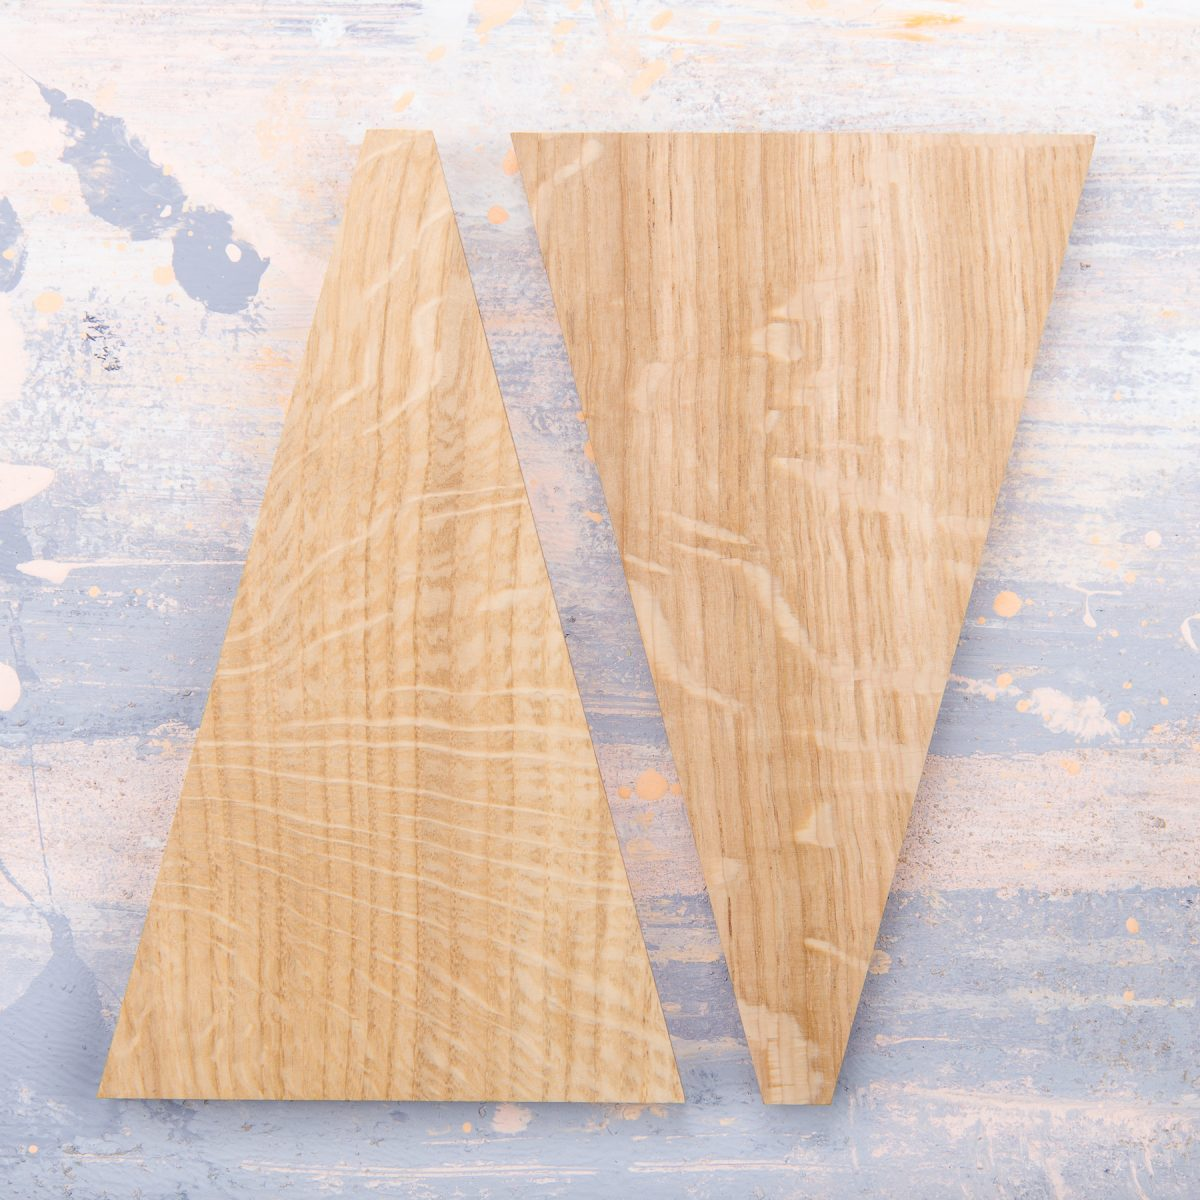 Jan Hendzel Studio samples quarter sawn english oak2